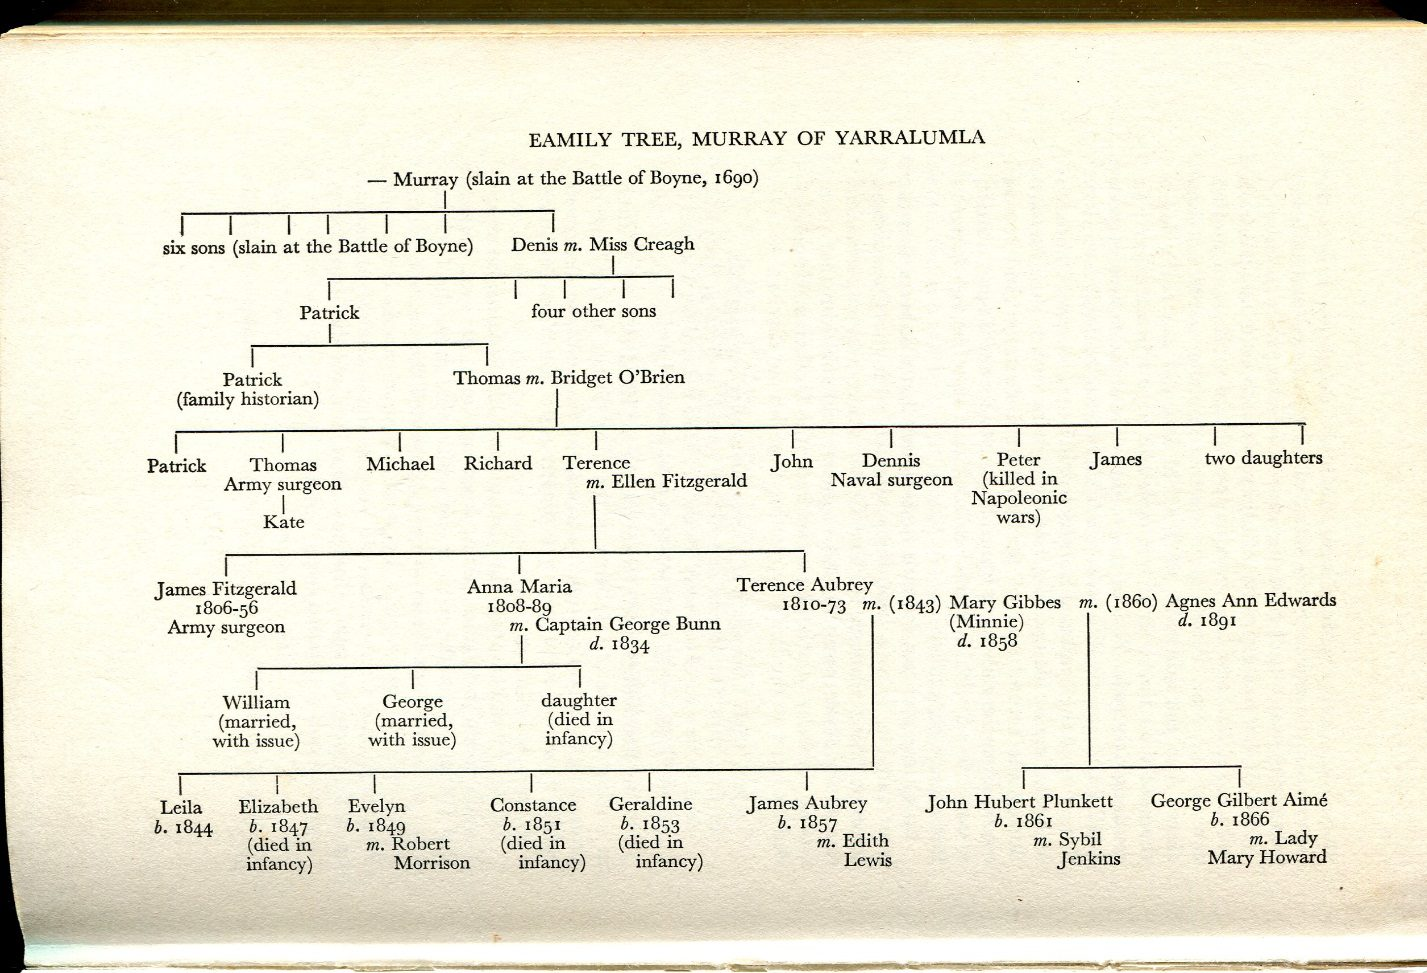 C:\Users\Virginia Rundle\Documents\Ancestry\Murray\Murray Family treeimg044.jpg